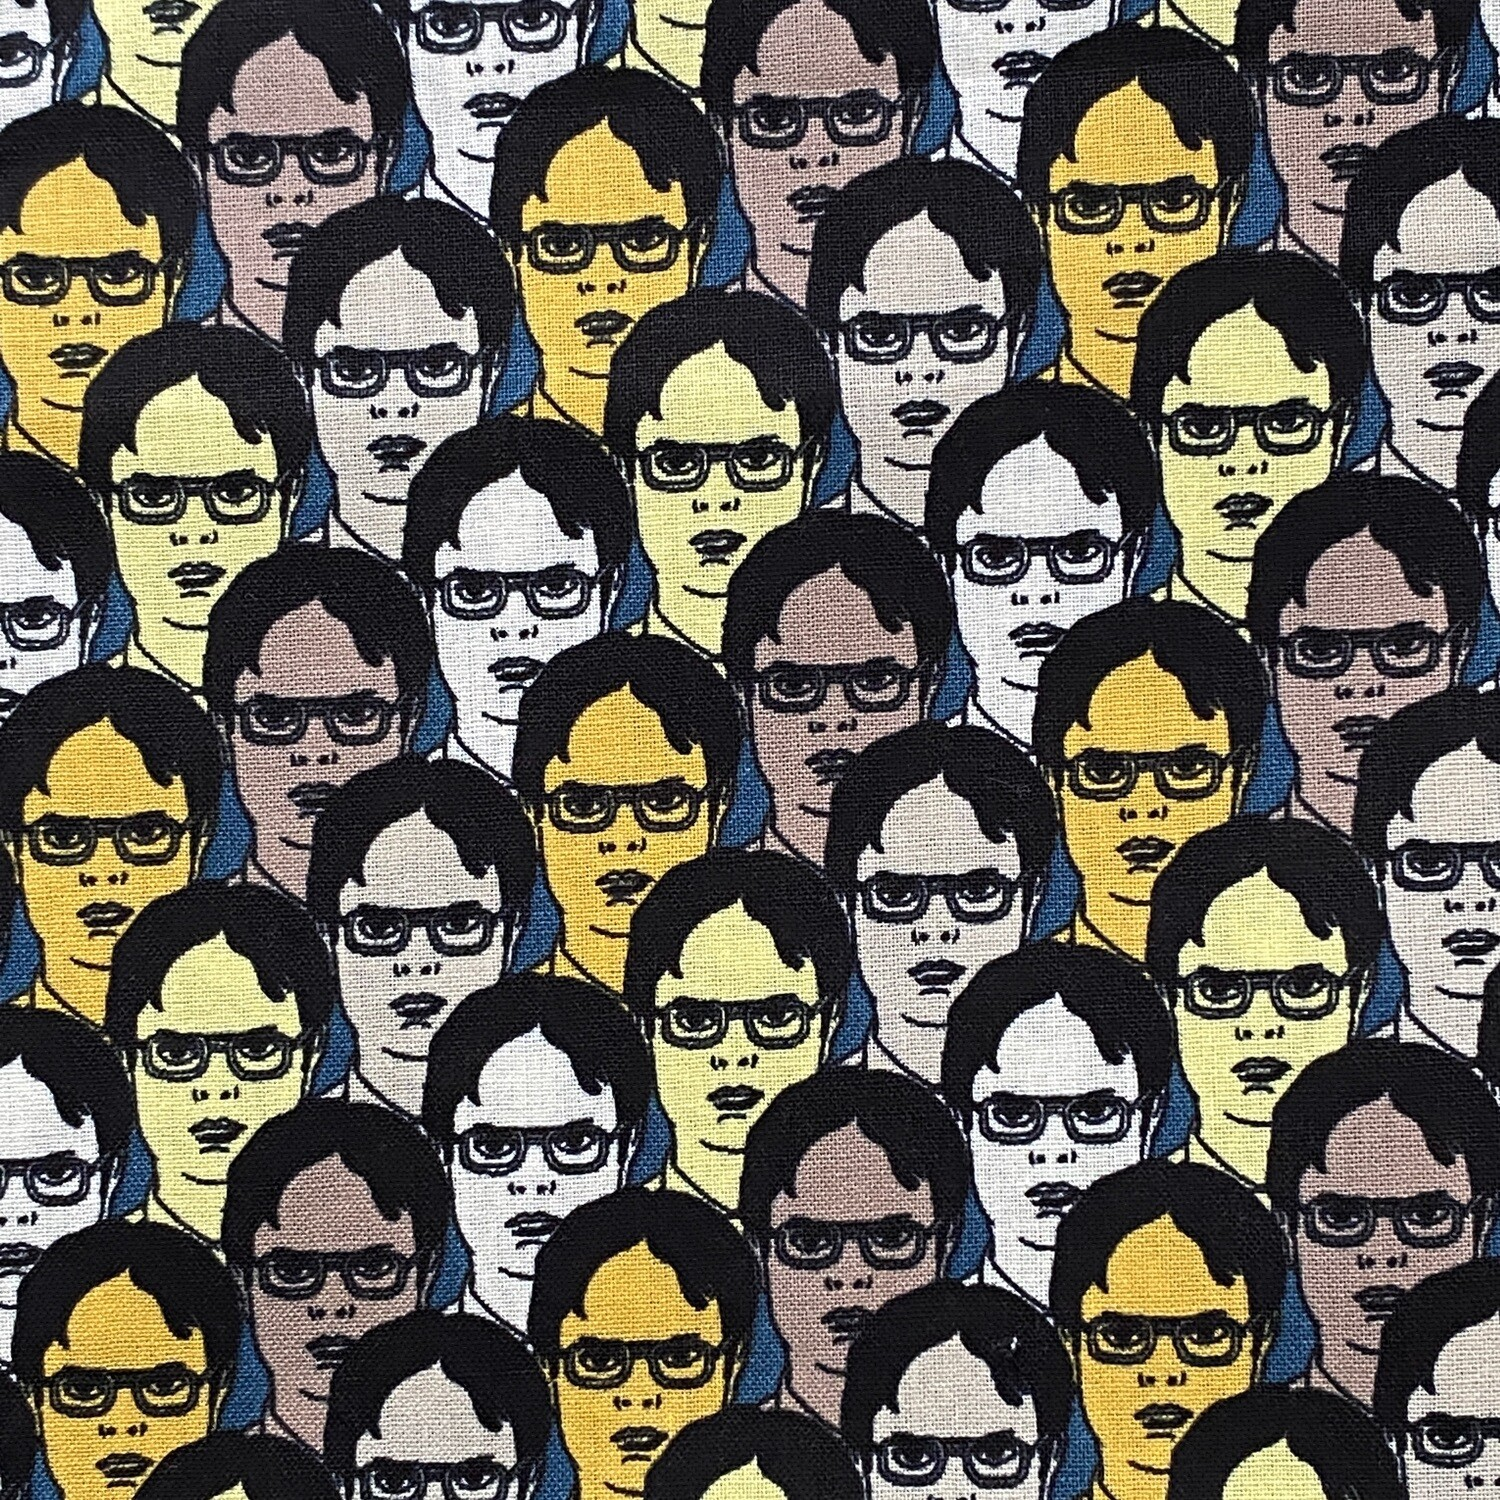 EasyFit The Office TV Show Dwight Schrute Faces Reusable Cloth Face Mask